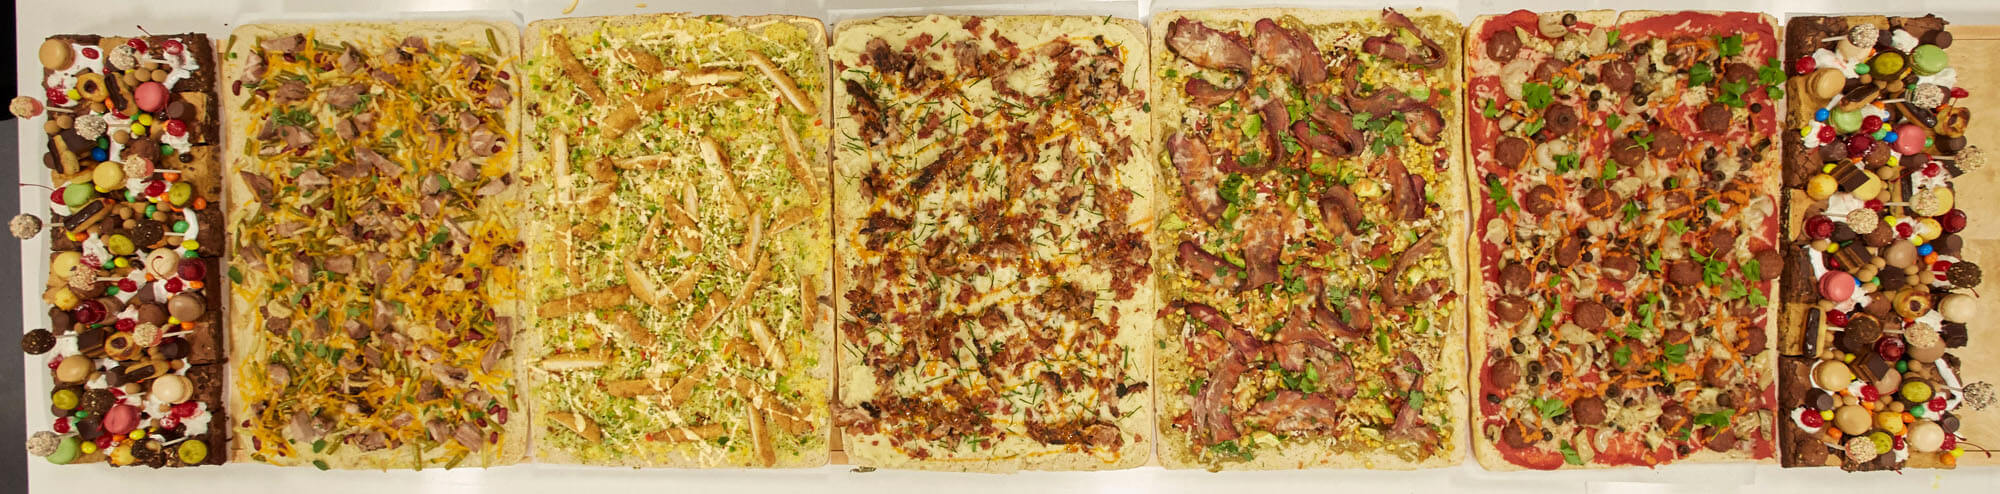 54 Topping PIzza